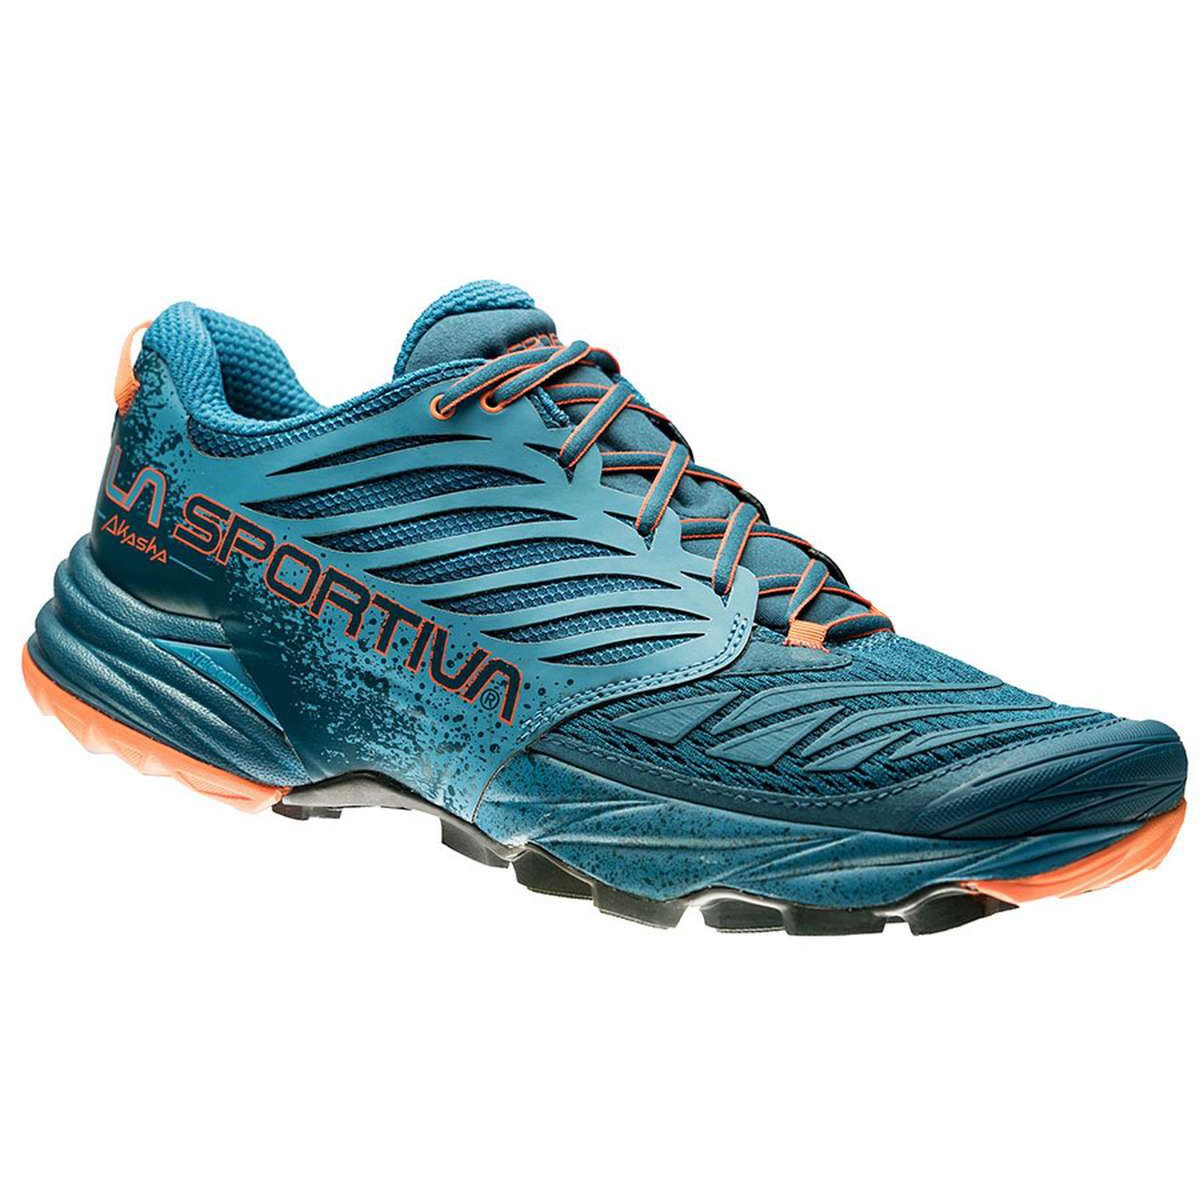 La Sportiva Akasha running shoe, outer side view in blue colours